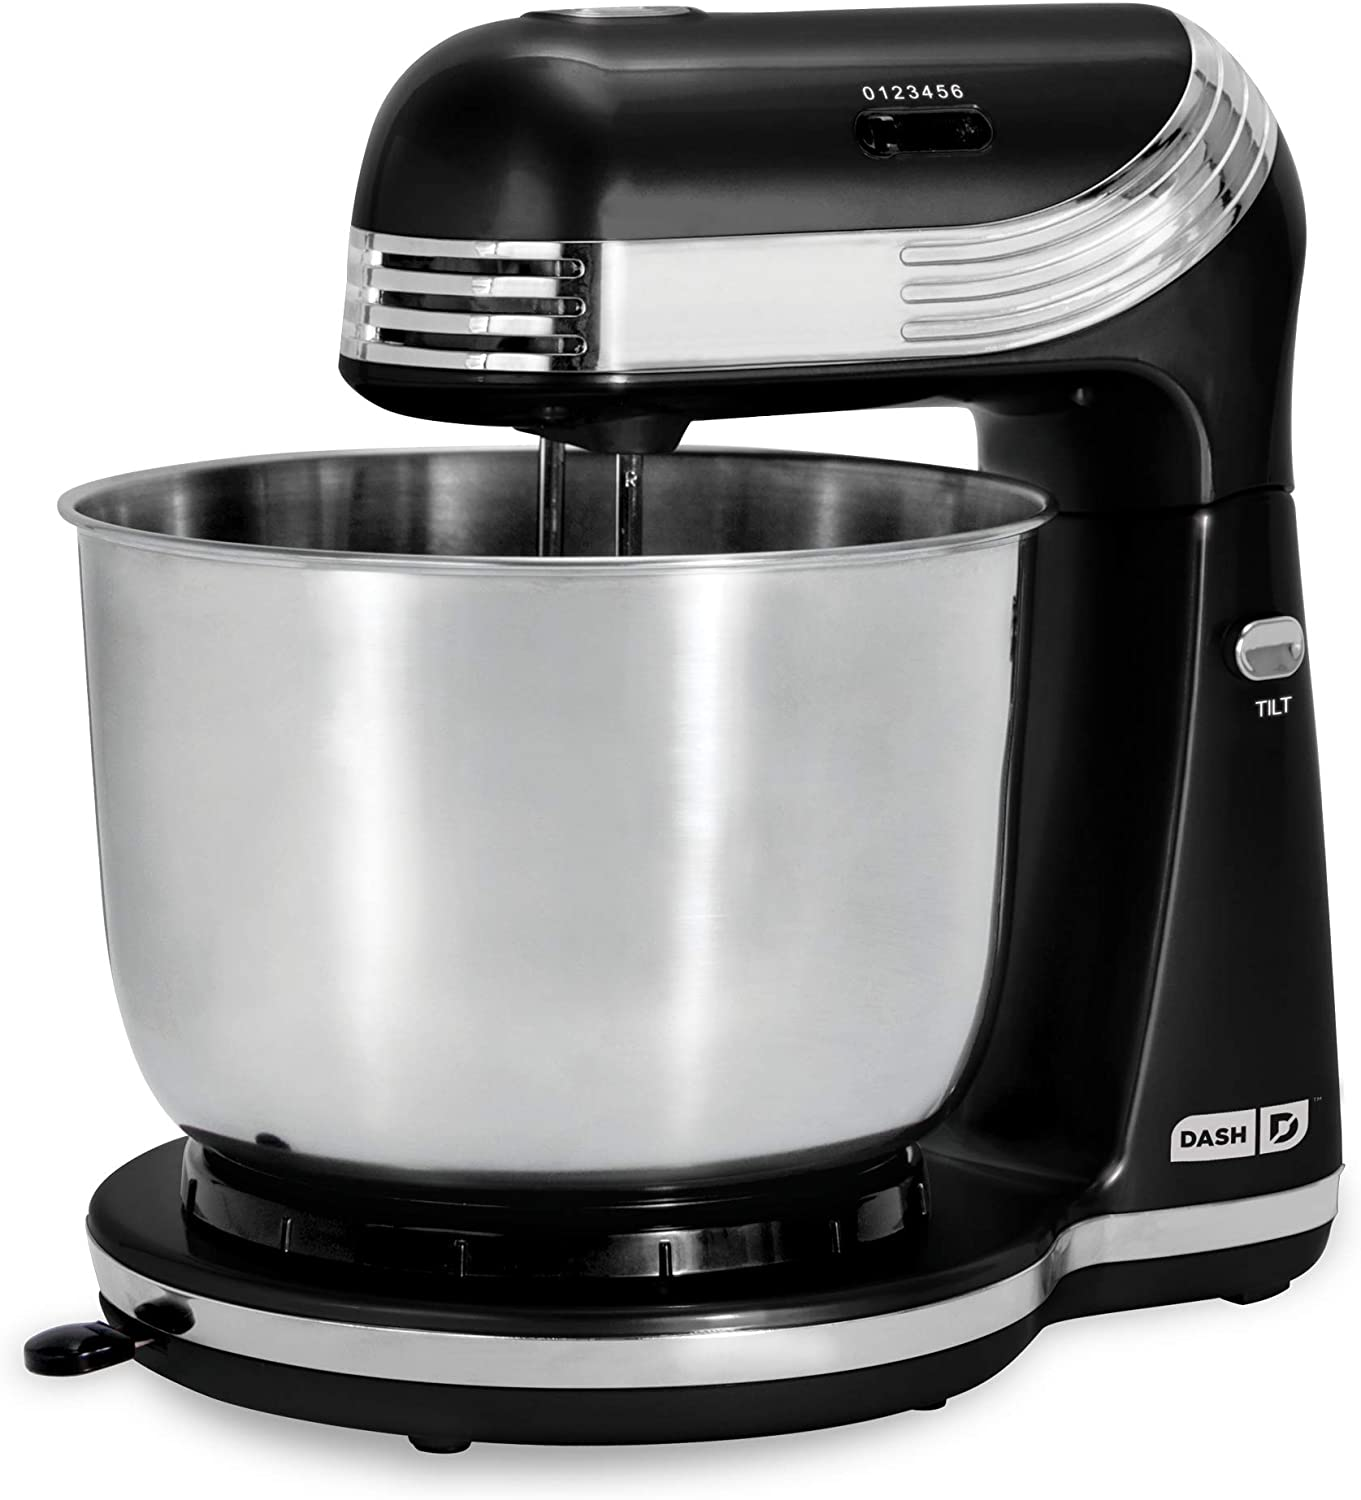 Dash Stand Mixer Electric Oklahoma City Mall for Everyday Japan's largest assortment 6 Speed Use Stan :